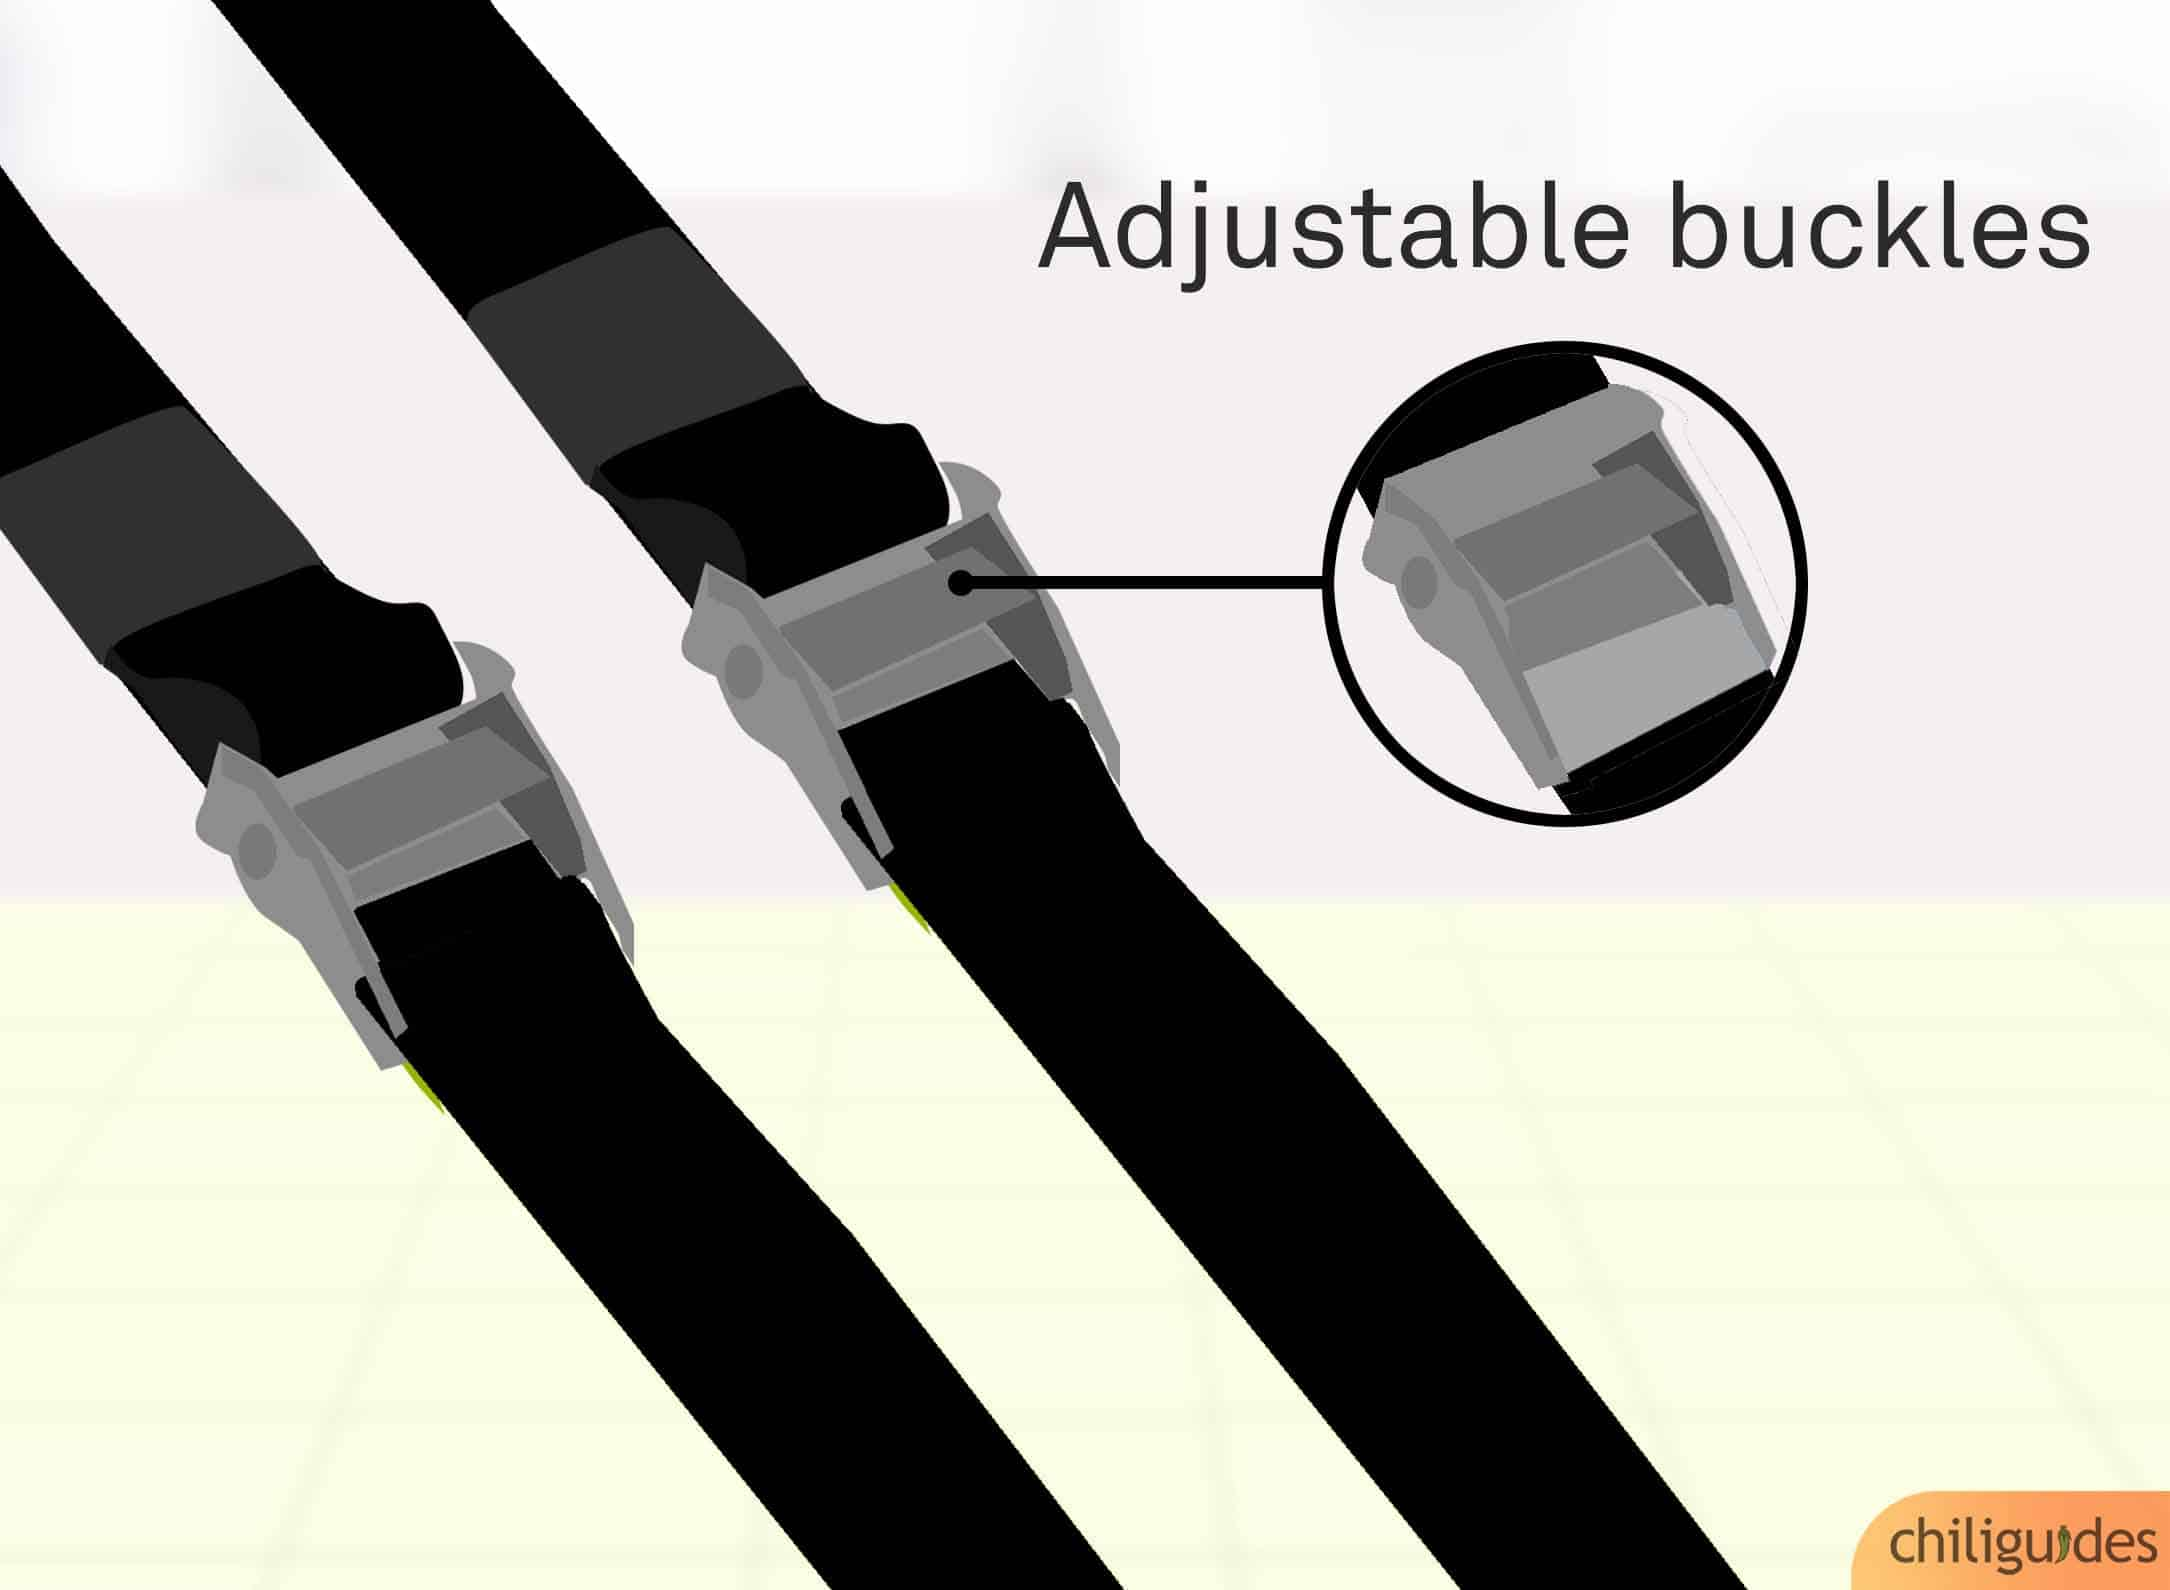 <p><b>The straps should have adjustable buckles.</b></p>